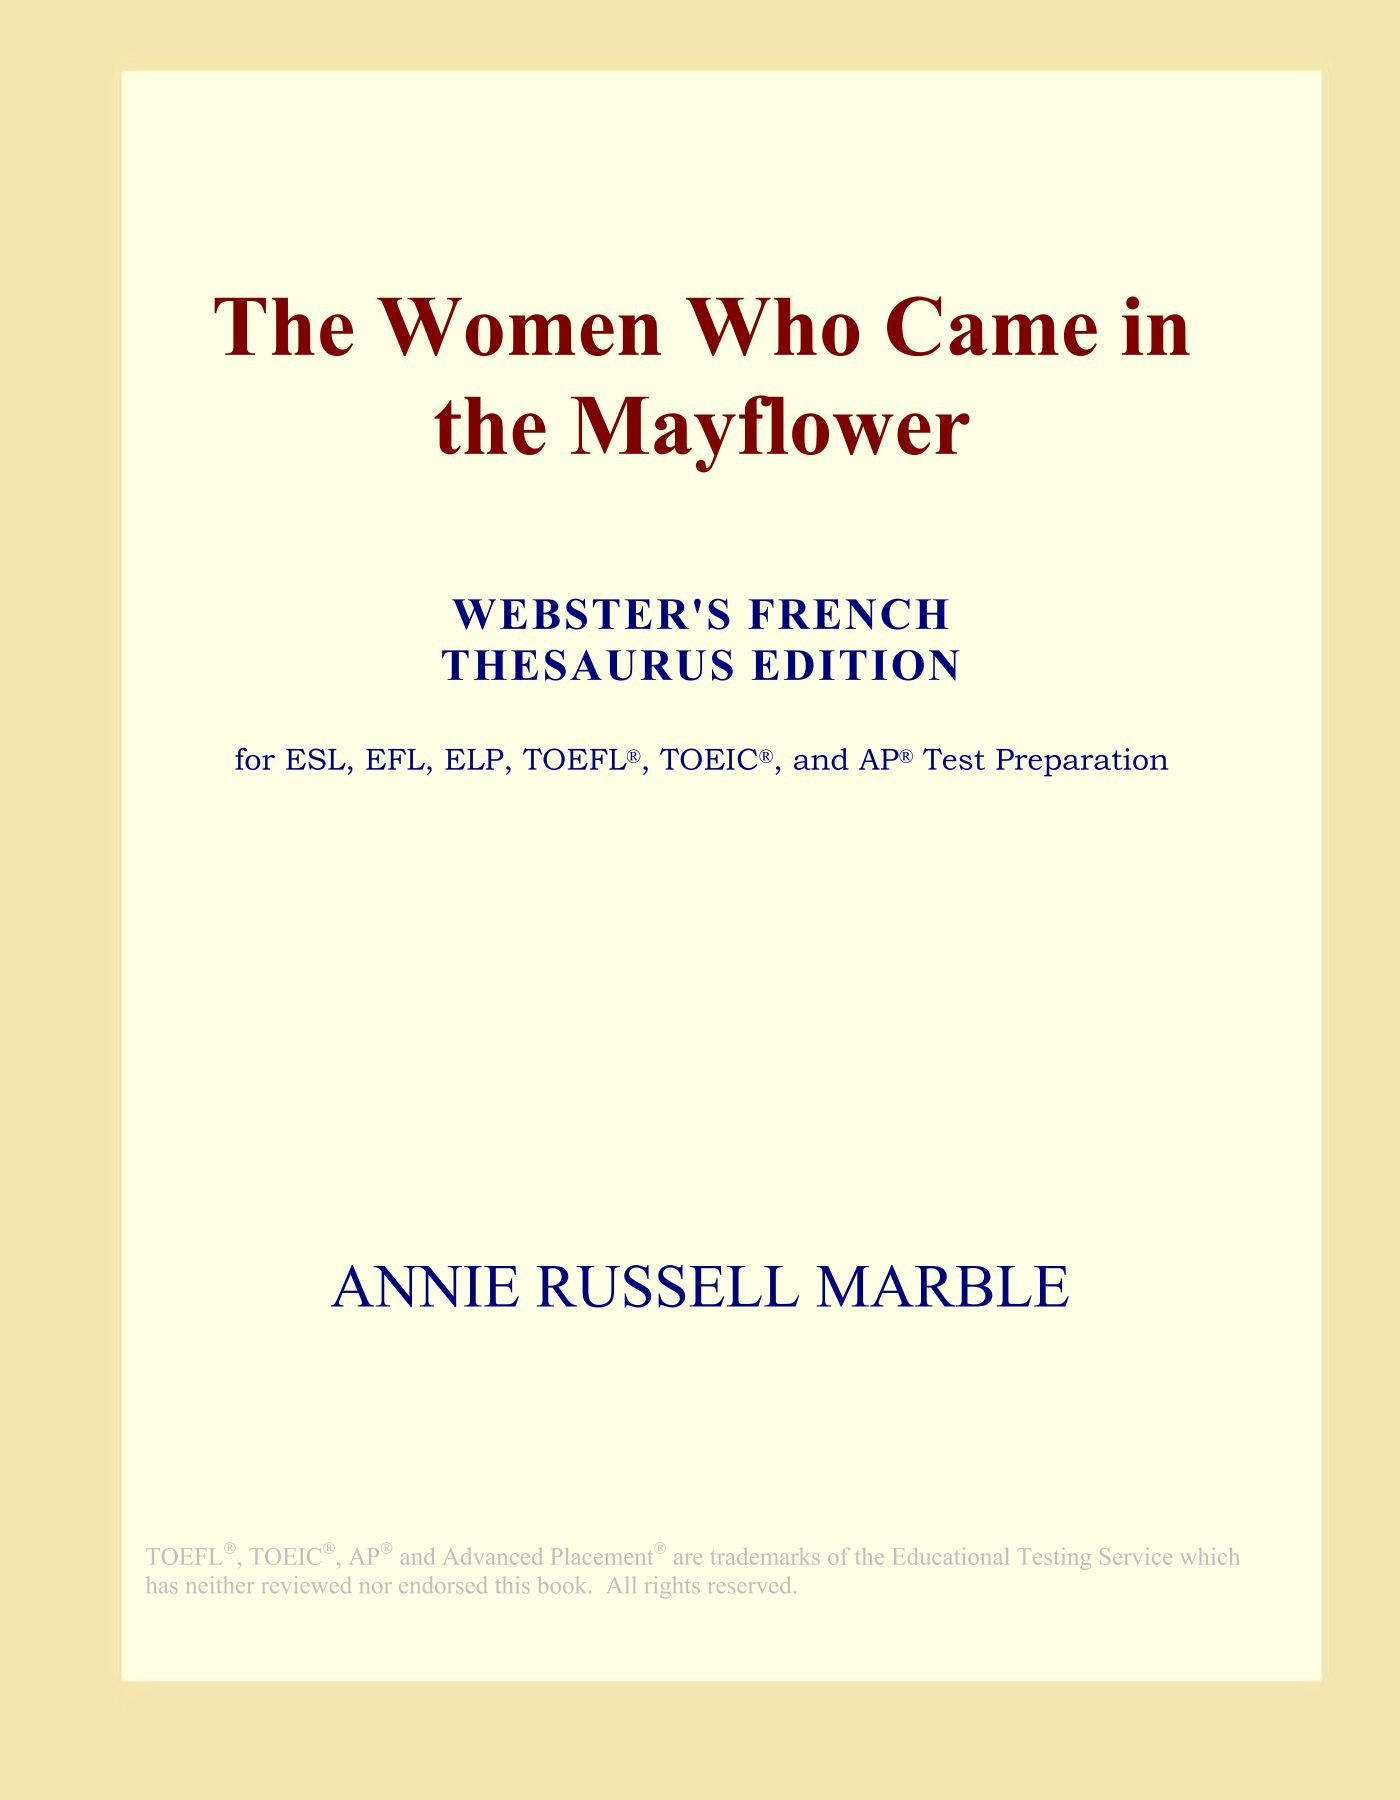 The Women Who Came in the Mayflower (Webster's French Thesaurus Edition):  Icon Group International: 9780497956110: Amazon.com: Books